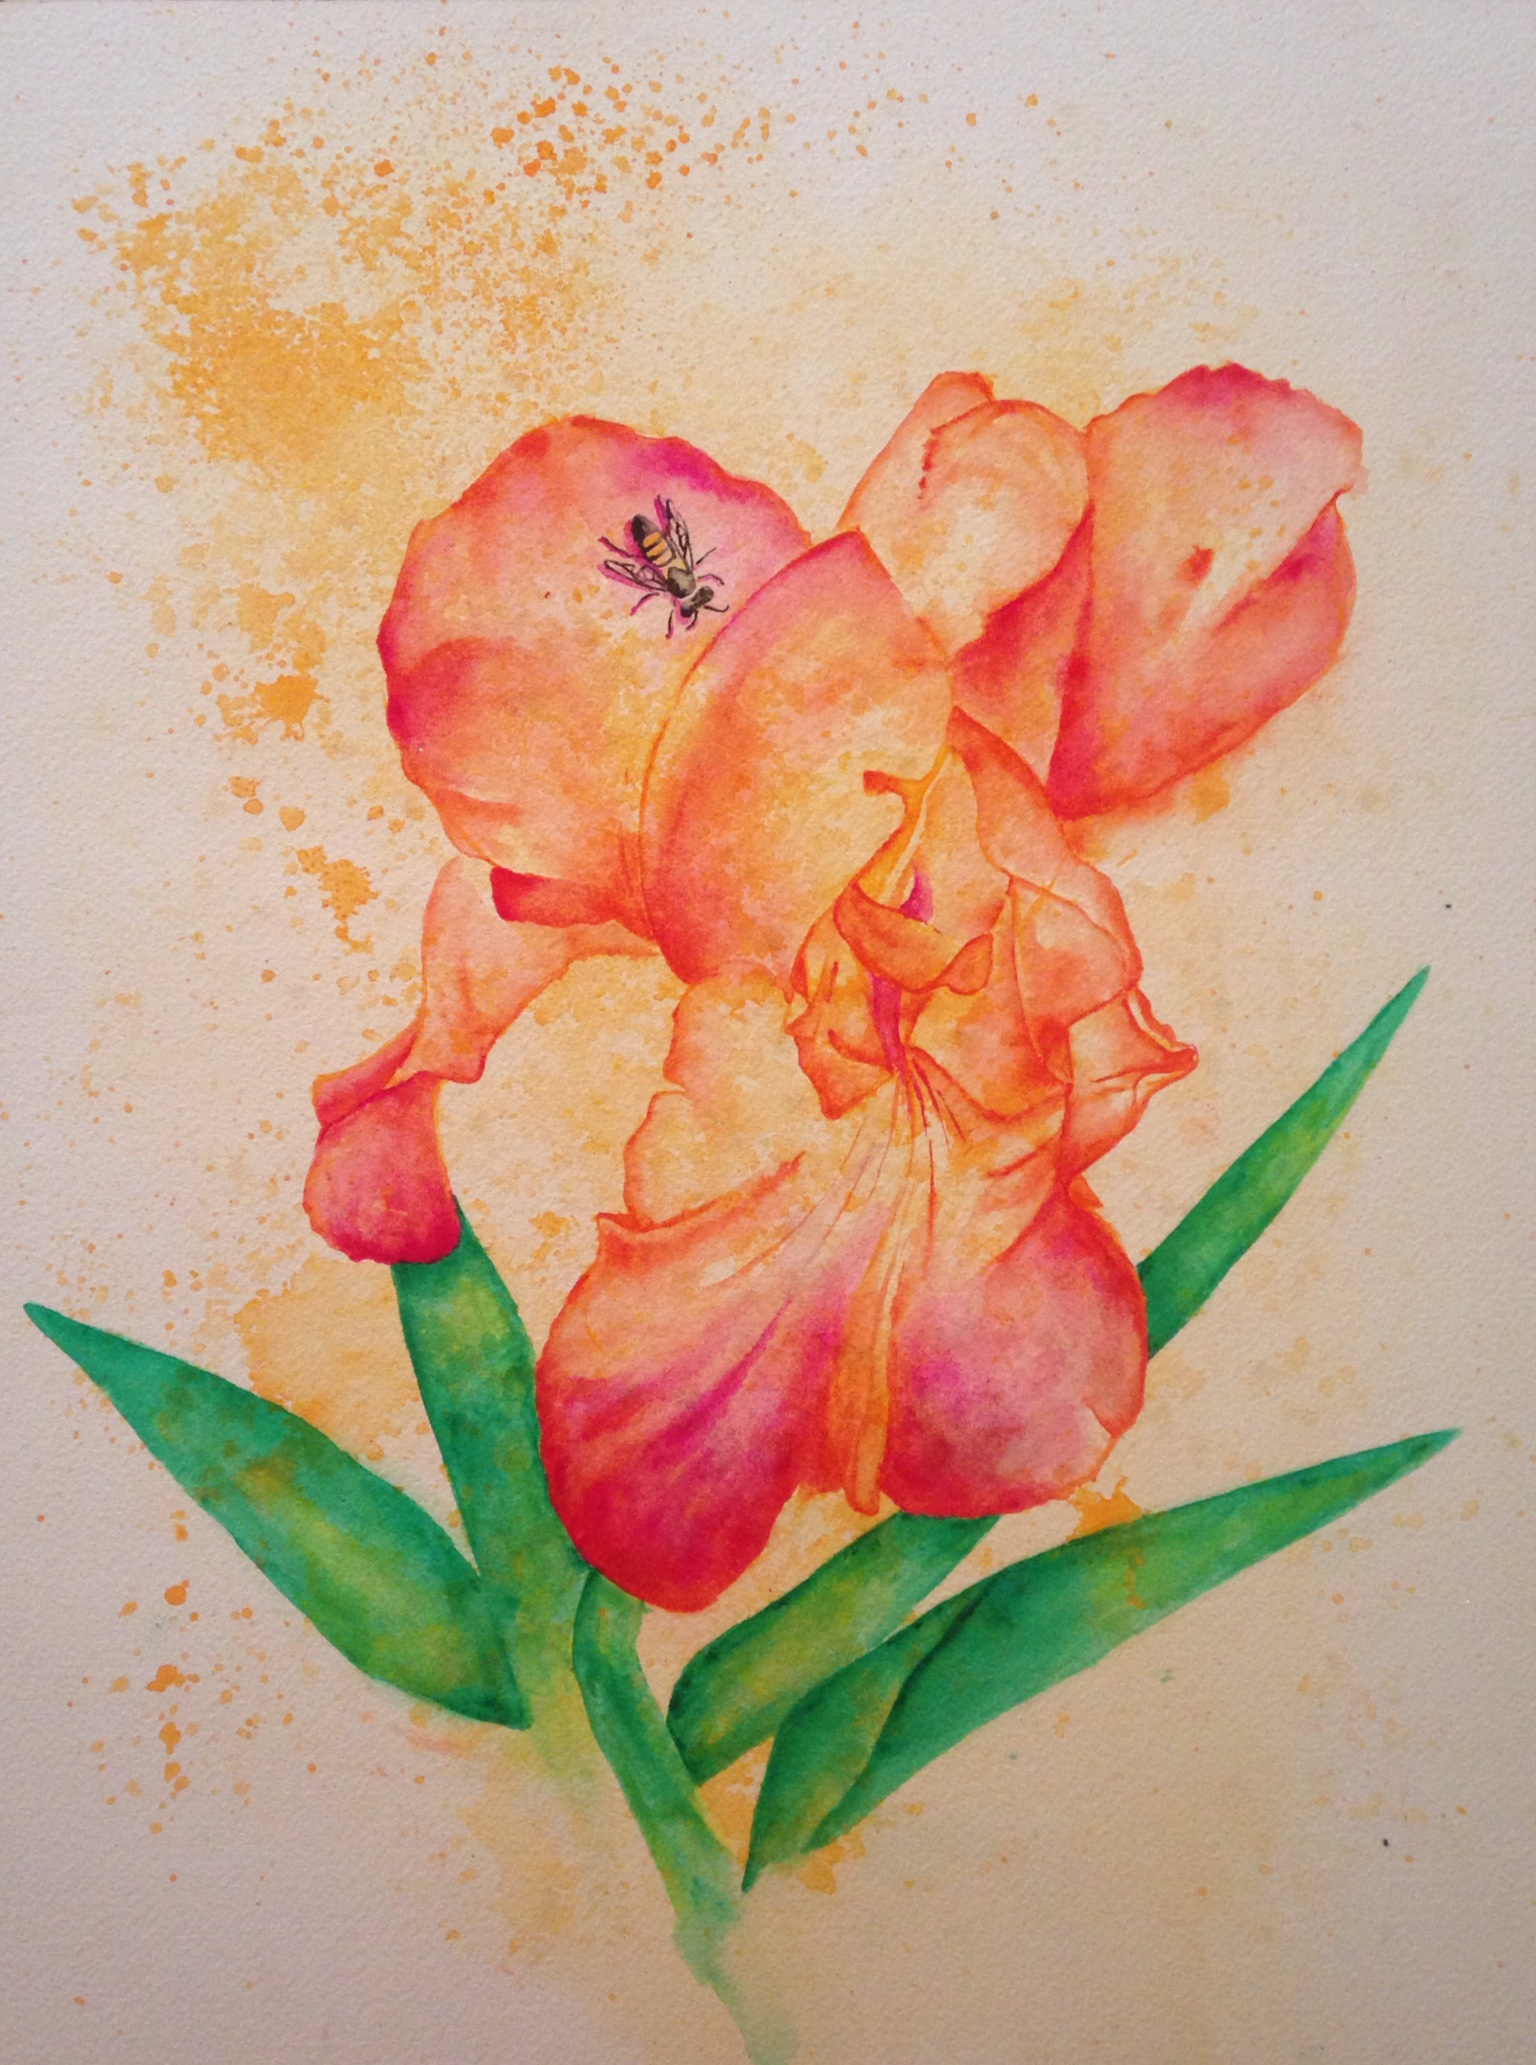 """Altruism in Nature  salt scrubbed water color on cold press paper  12"""" x 16""""  $500"""